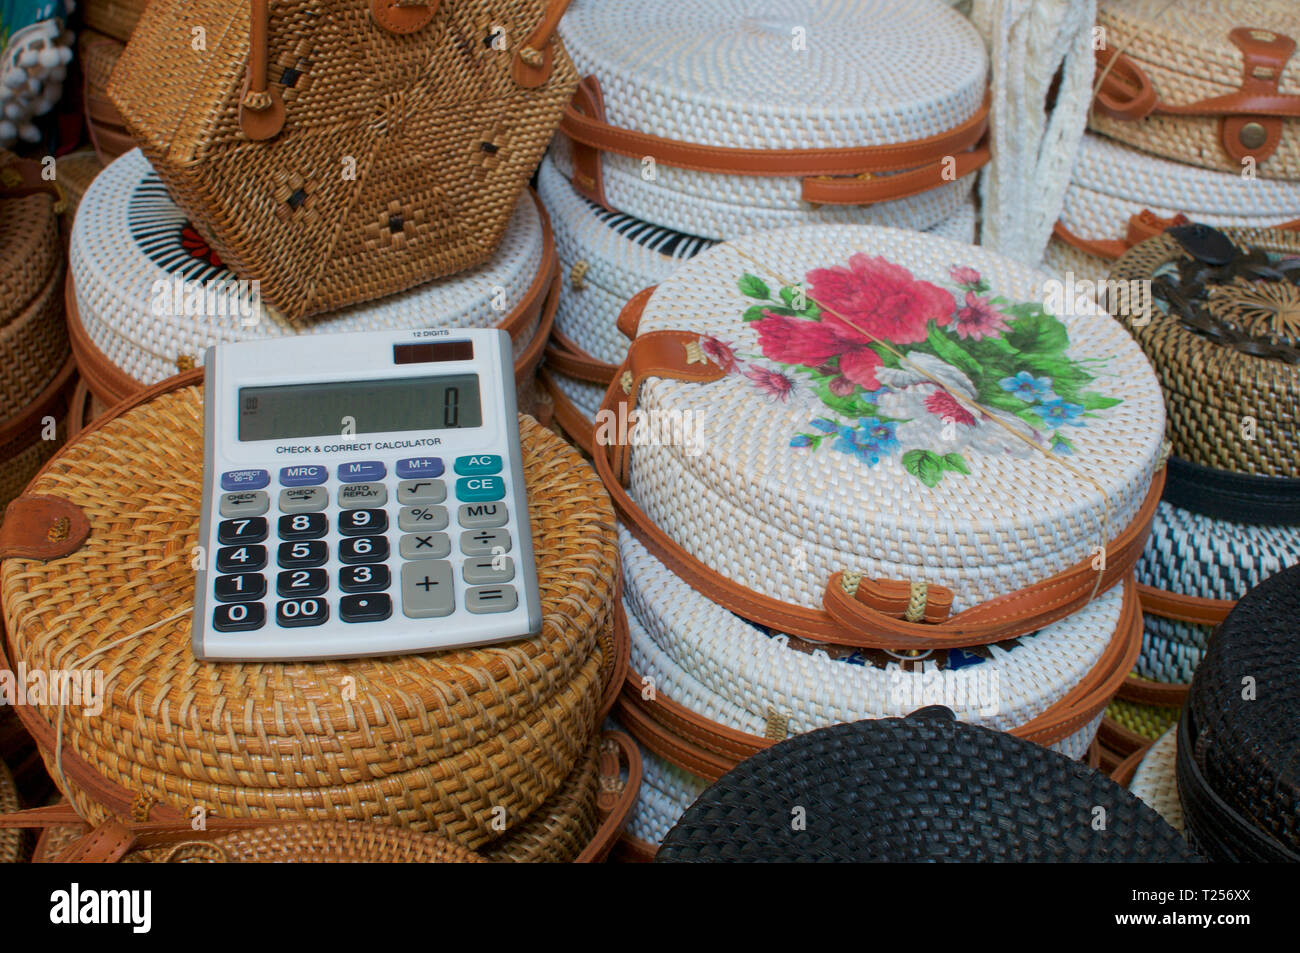 Close up picture of an calculator on a group of brown and white rattan bags displayed at the Ubud Art Market in Bali ,Indonesia - Stock Image